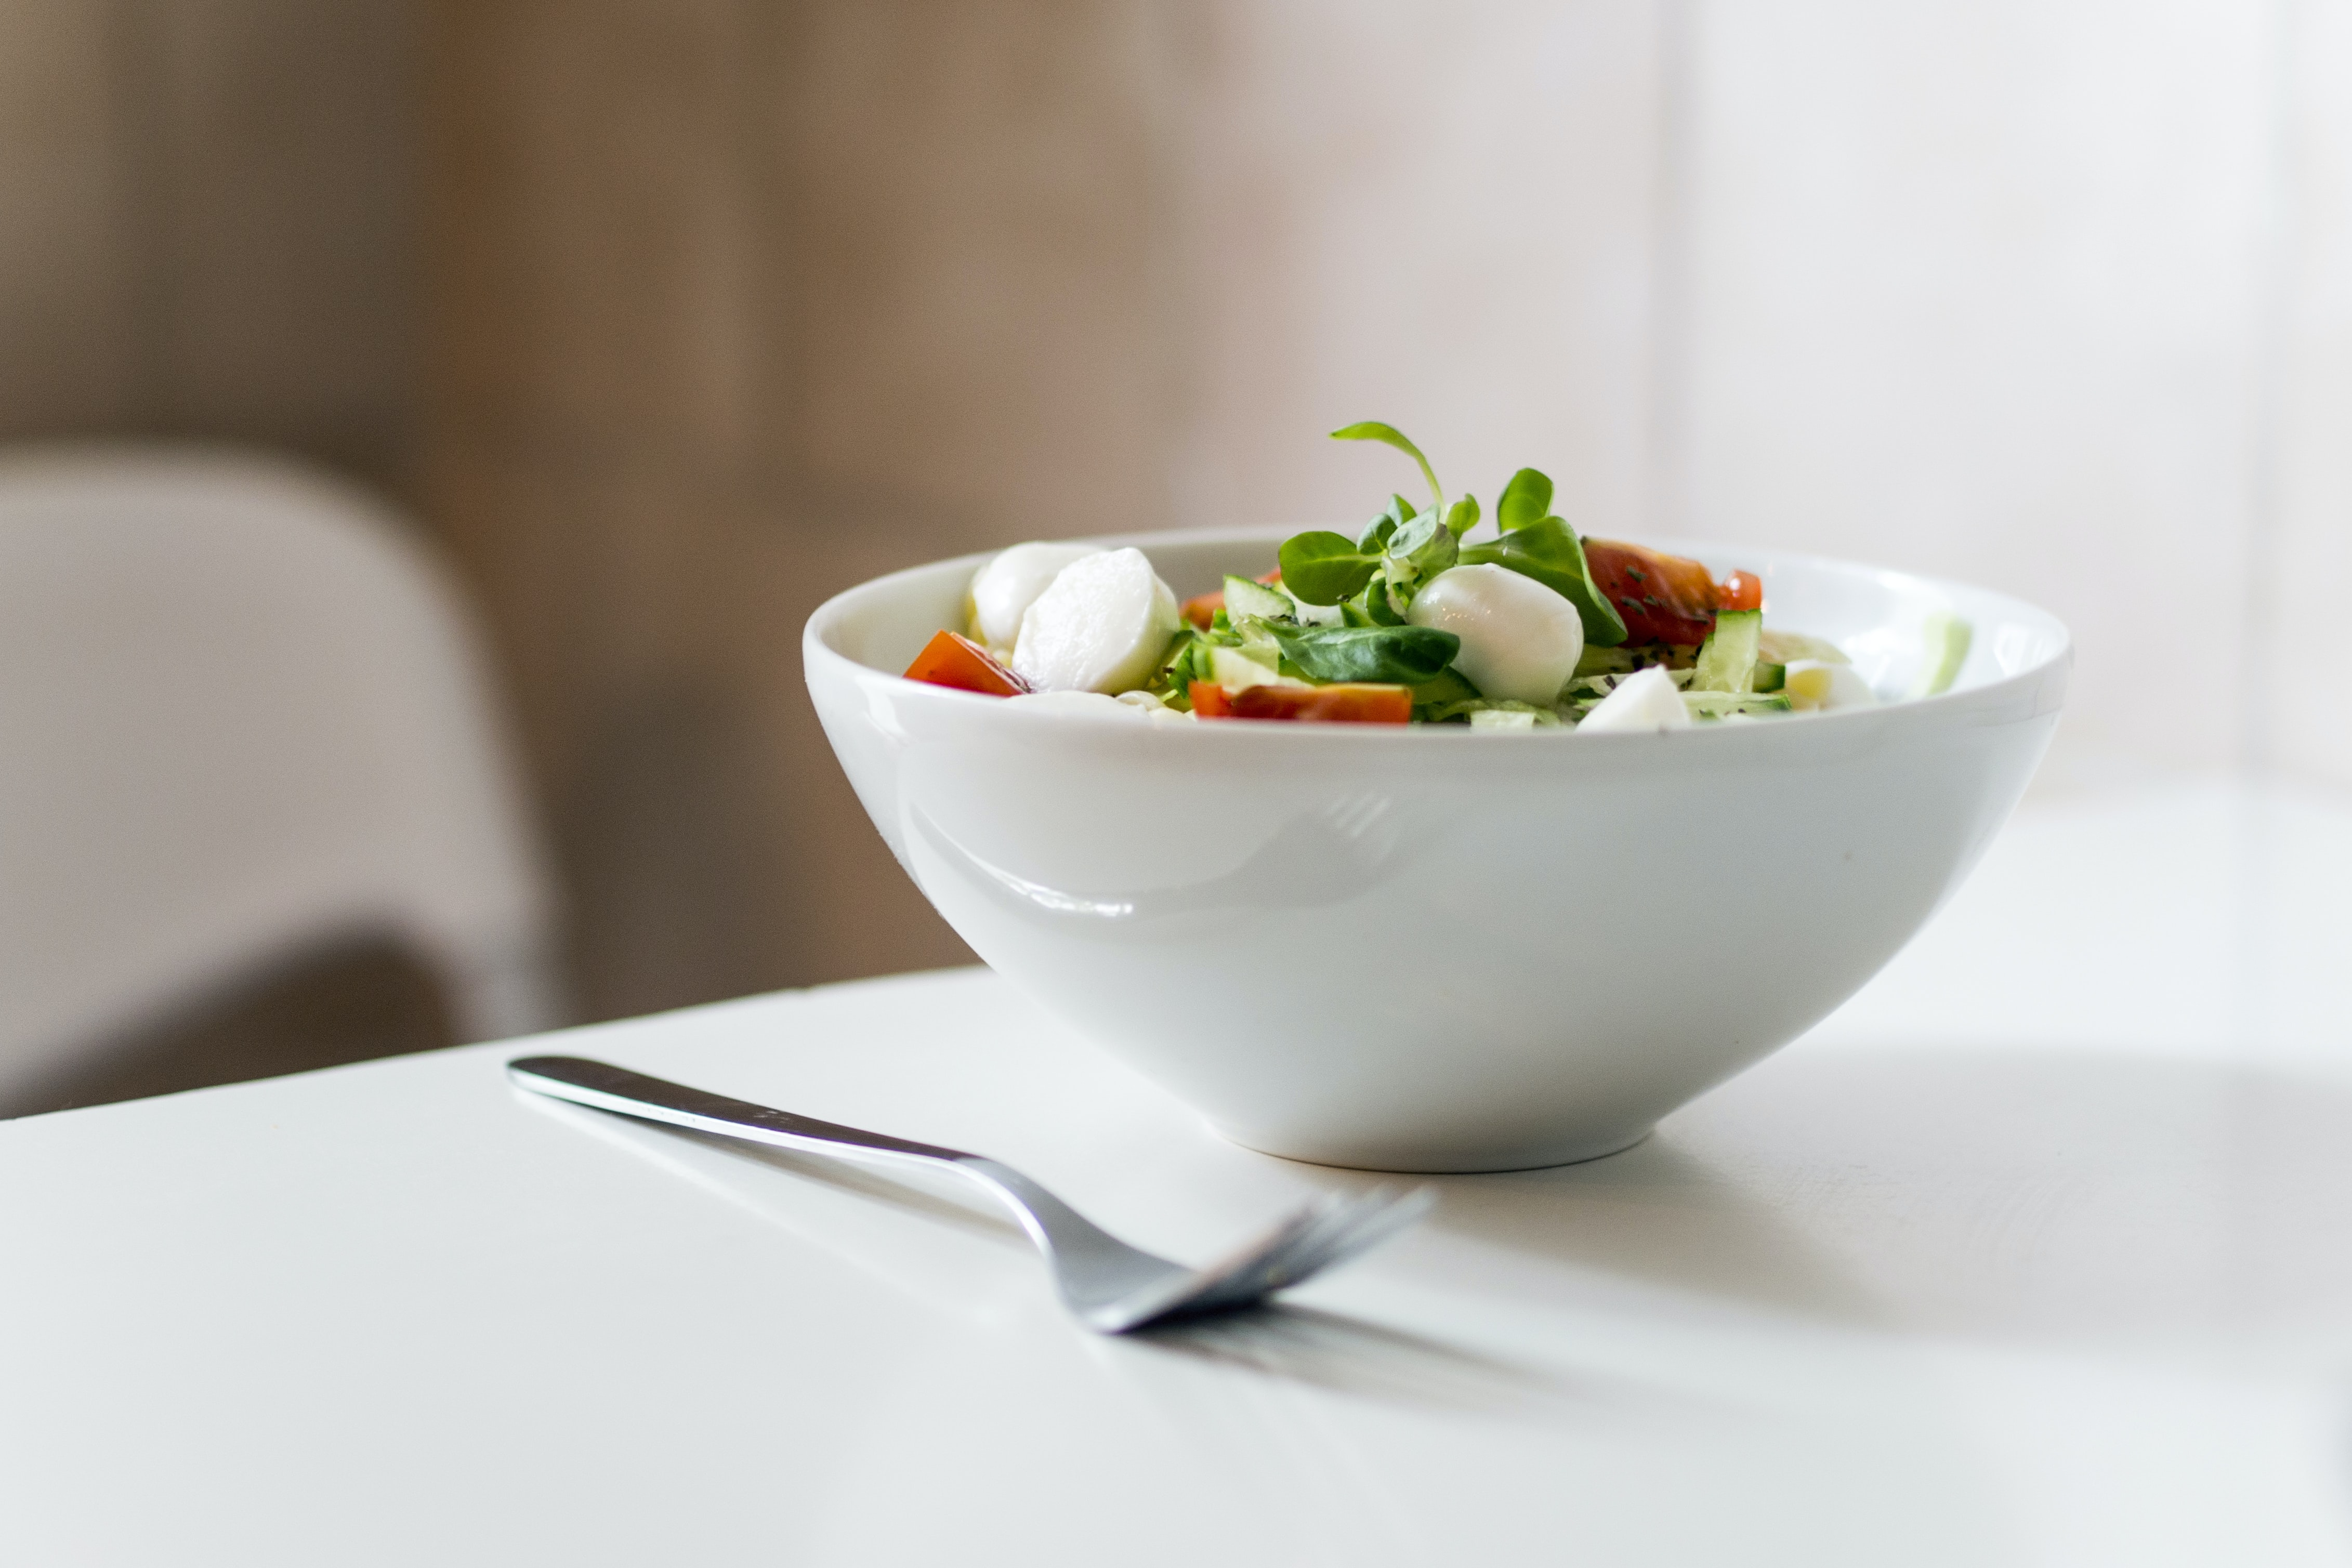 bowl of vegetable beside fork place on table